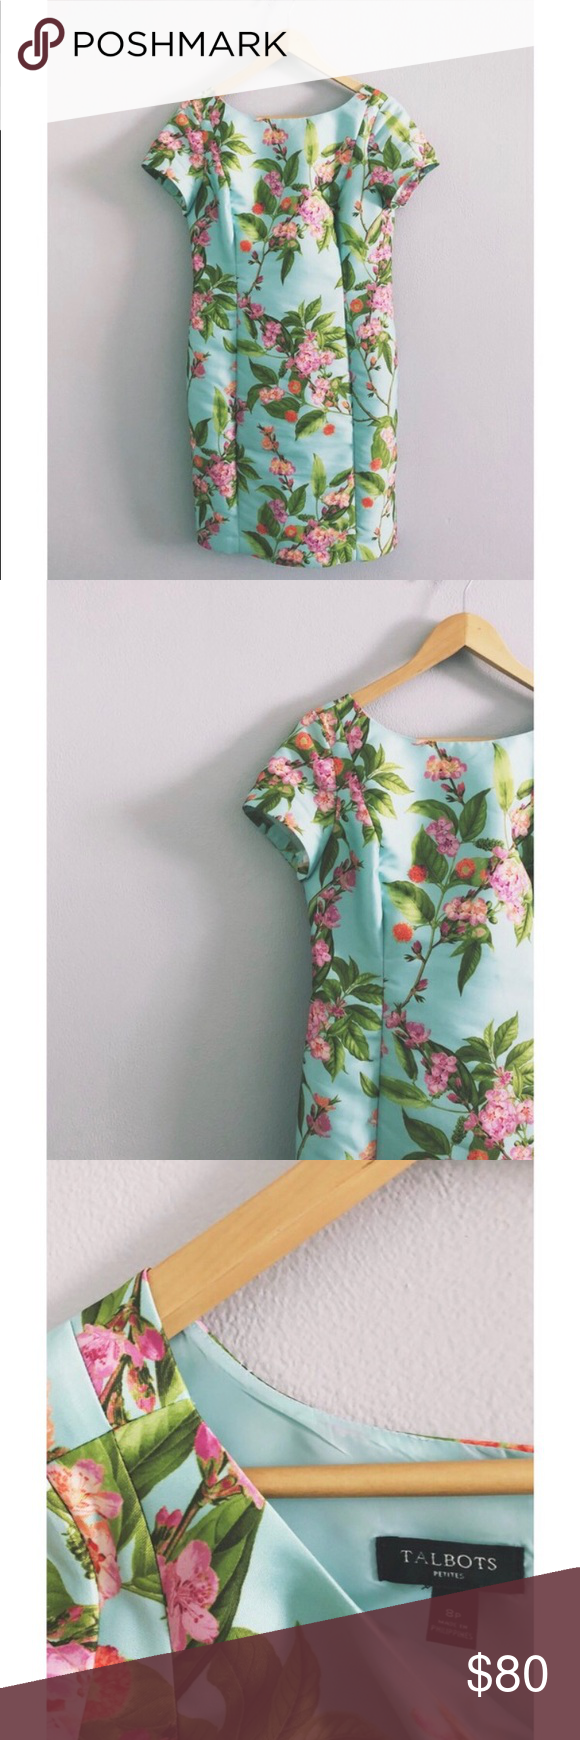 1950s Inspired Mint Greenhouse Dress Style Turquoise Mint Floral Plantprint 1950sinspired Talbots Sizing 8 Petite W Petite Women Talbots Dress Dresses